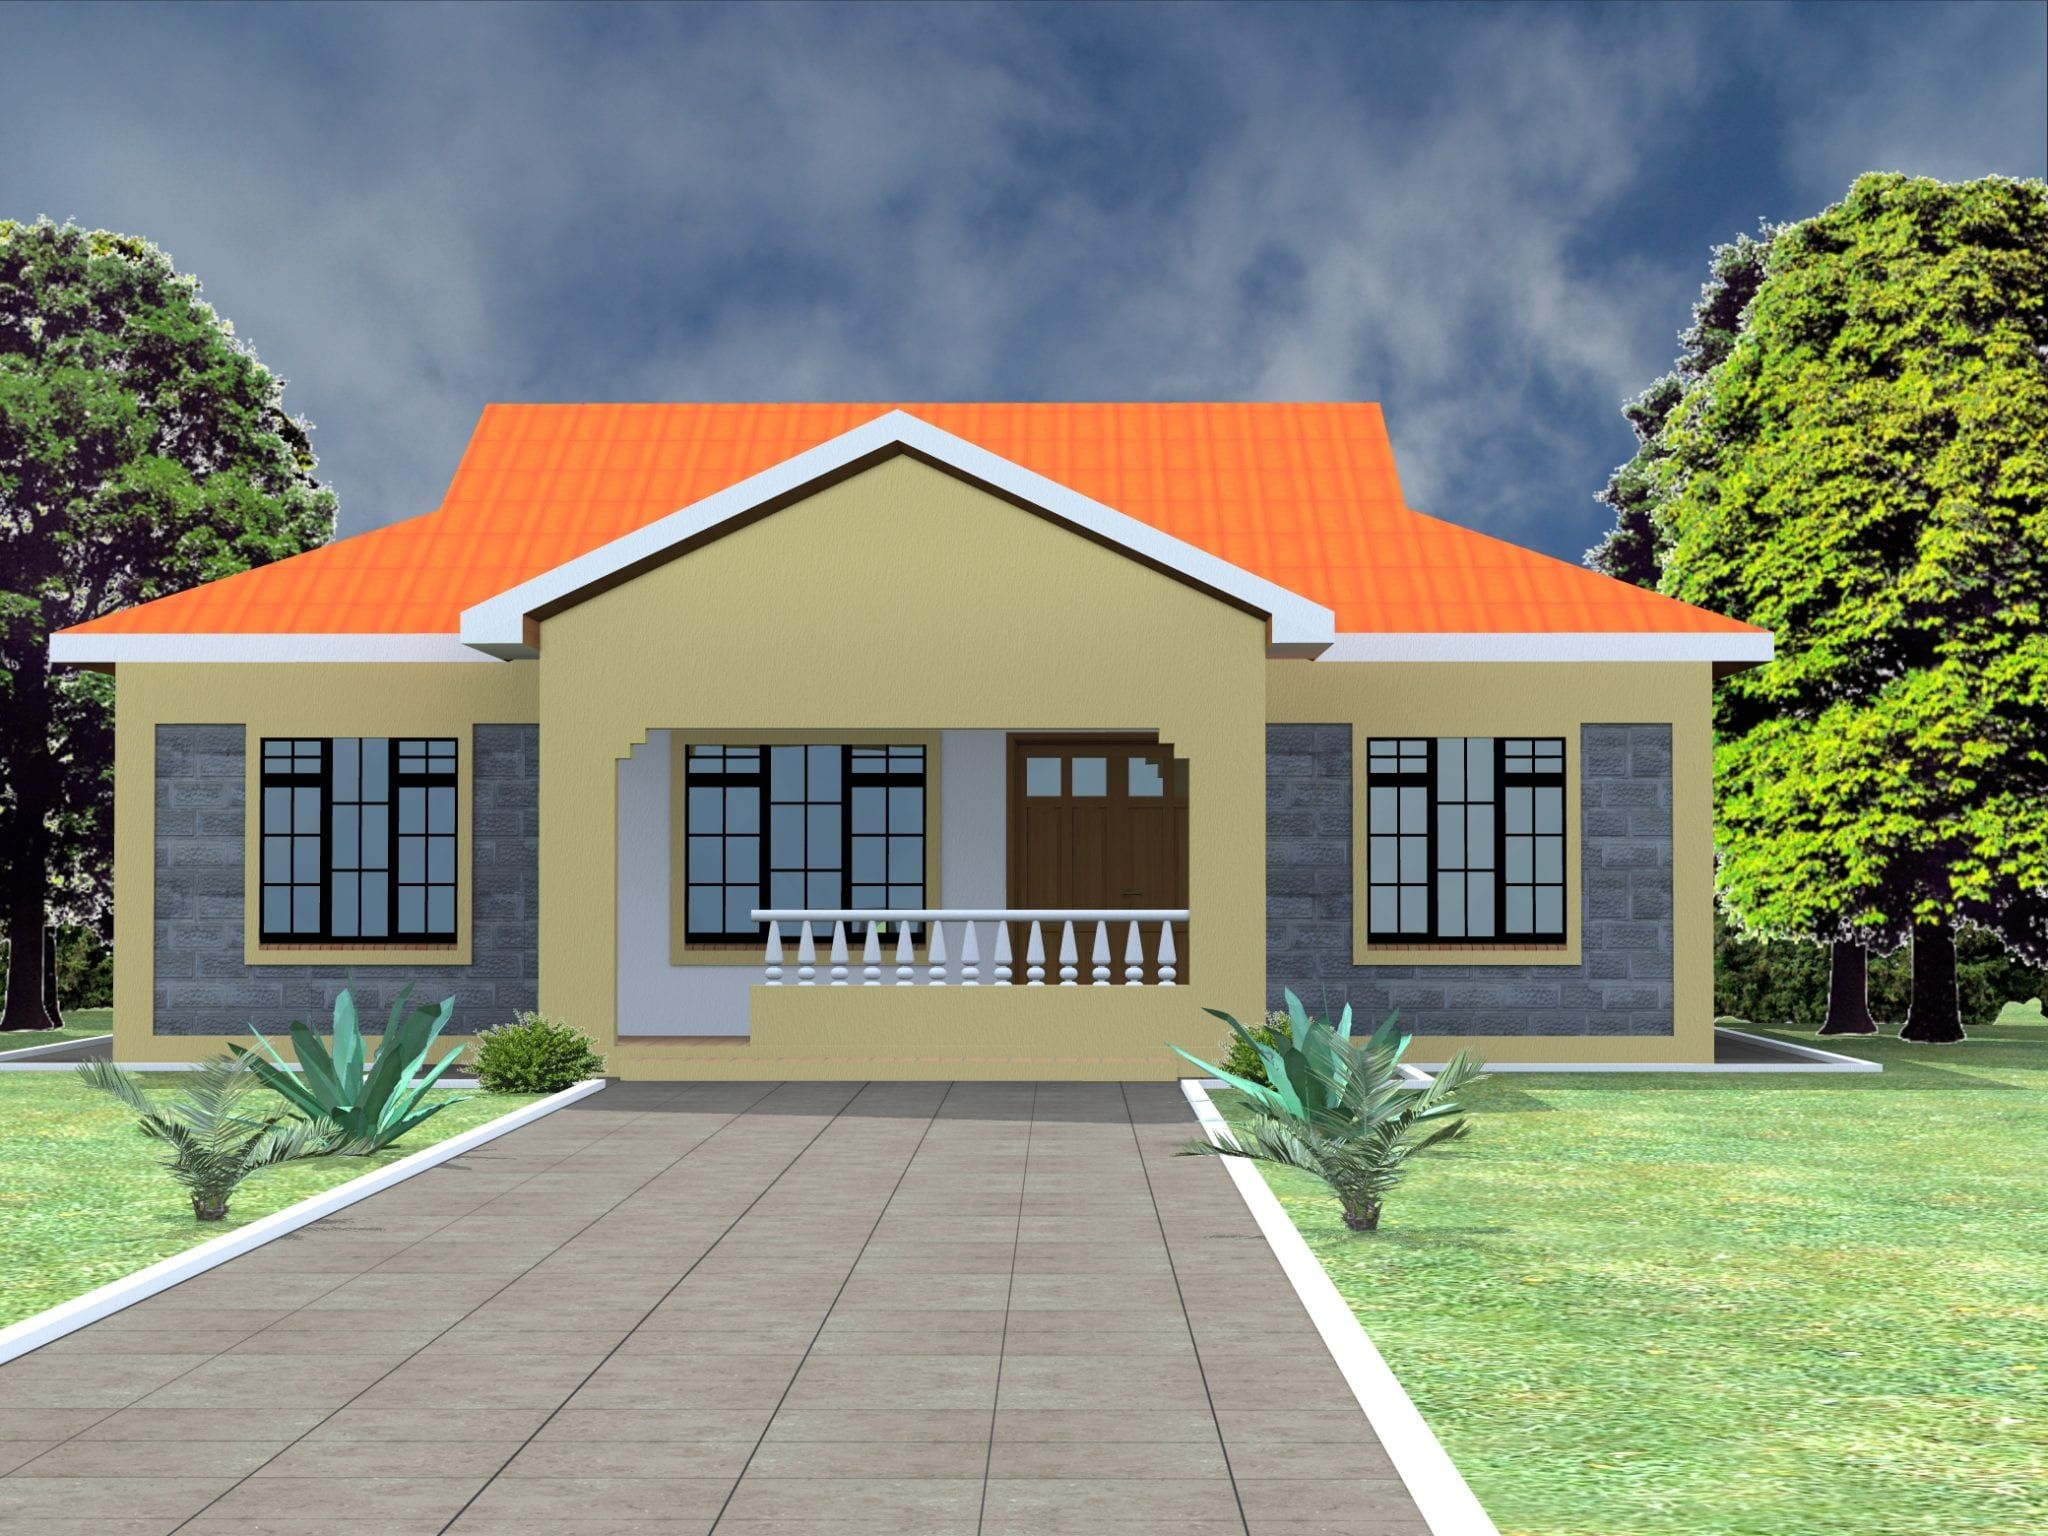 Low Budget Modern 3 Bedroom House Design Hpd Consult In 2021 Three Bedroom House Plan Simple House Design Modern Bungalow House